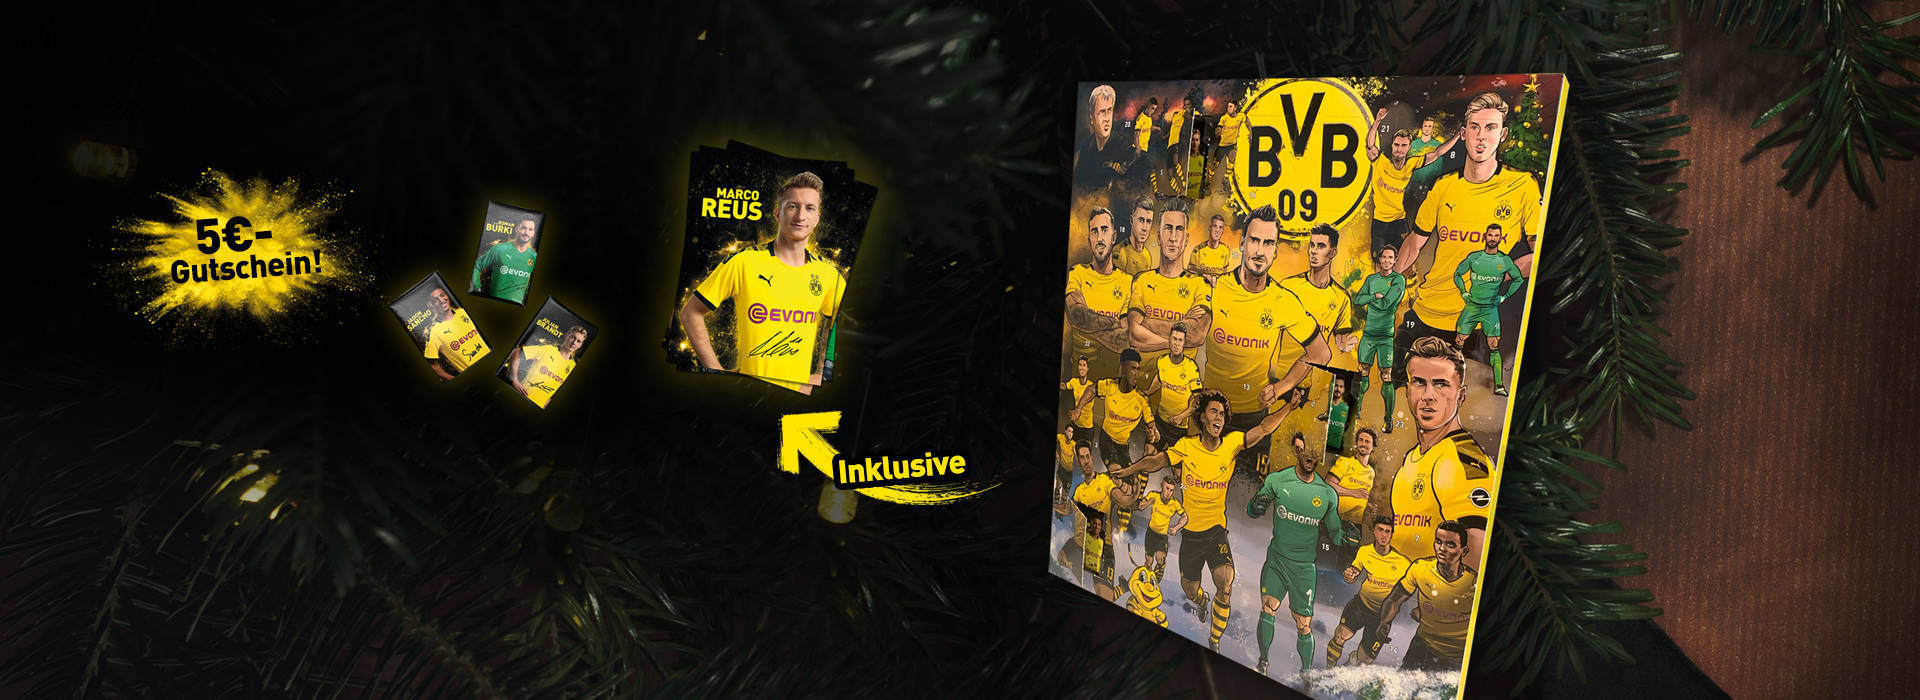 Unser BVB-Comic-Adventskalender